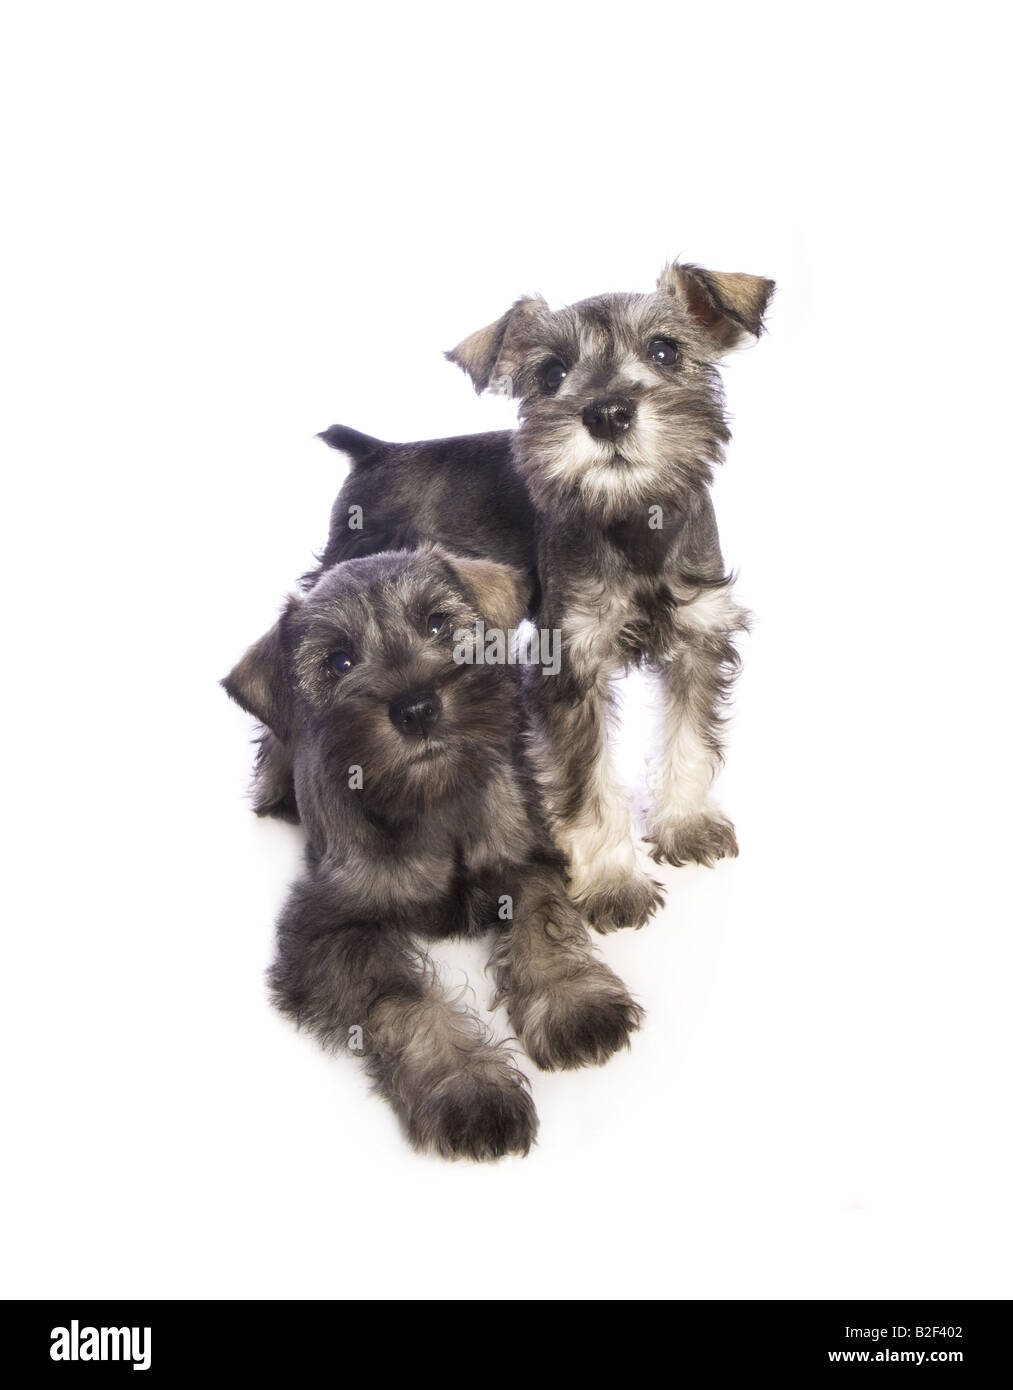 Two Adorable Miniature Schnauzer Puppies Playing Together